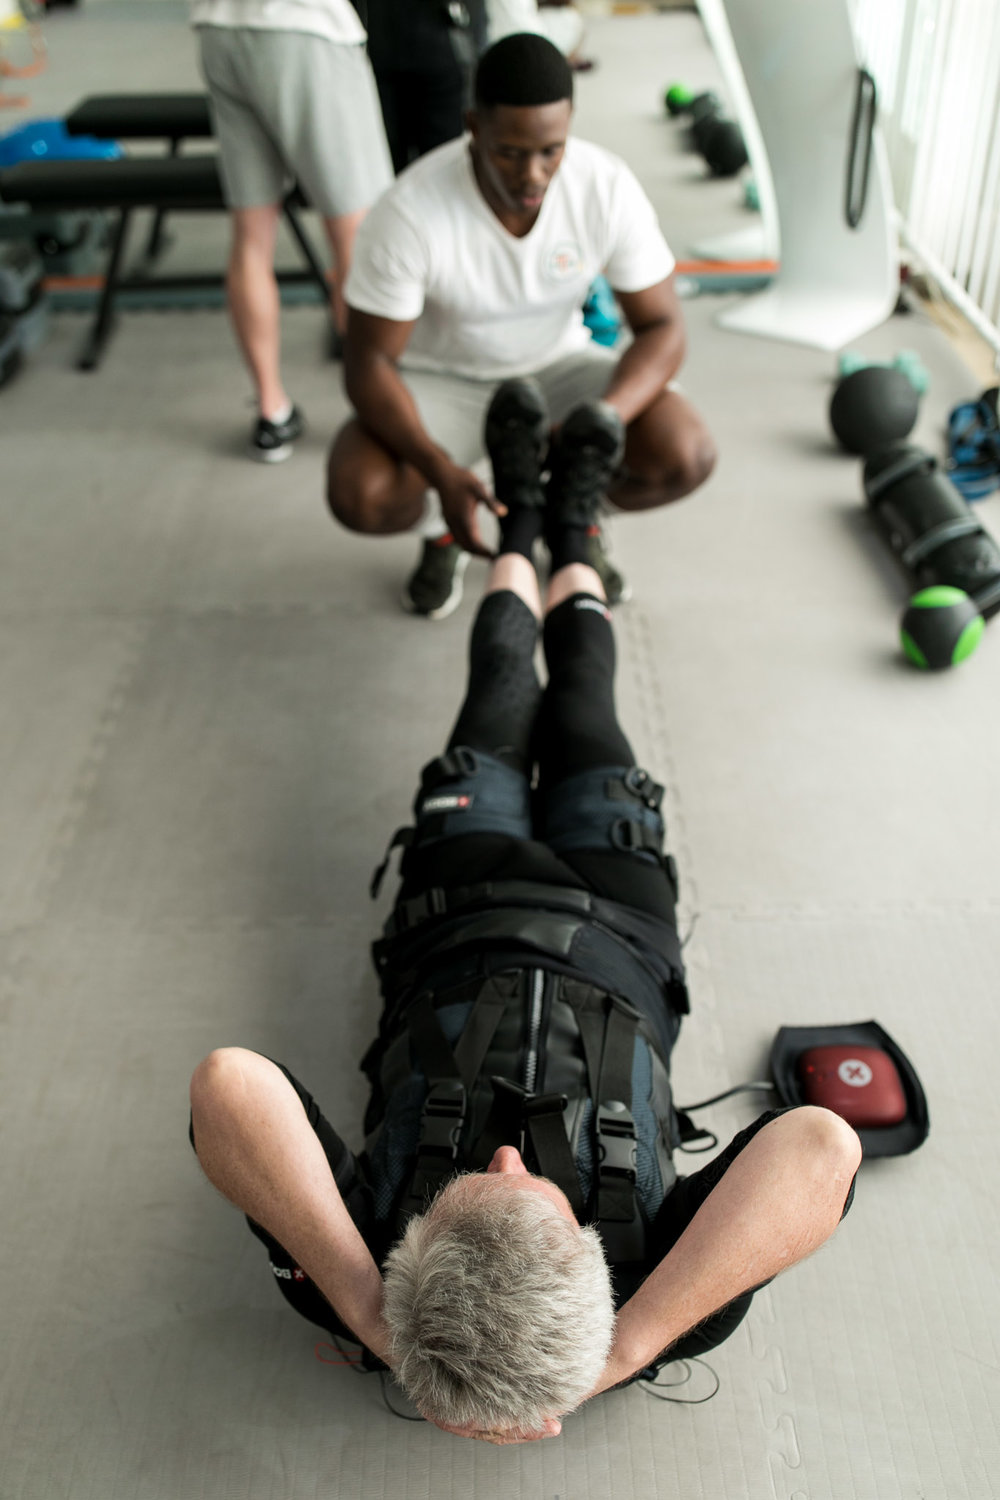 What is EMS? - Electrical Muscle Stimulation, or EMS, is the stimulation of muscle contraction using electric impulses. By activating muscle contraction via electrical stimuli, EMS trains your muscles in a way that traditional physical workouts cannot. In EMS training, electrical pulses activate the muscles externally. For the targeted muscle, it makes no difference whether the electric stimuli originates from the brain or electrodes. In both cases the muscle contracts. EMS sessions help reach deeper muscle tissue and do not affect the joints and results in many lasting benefits!Learn More